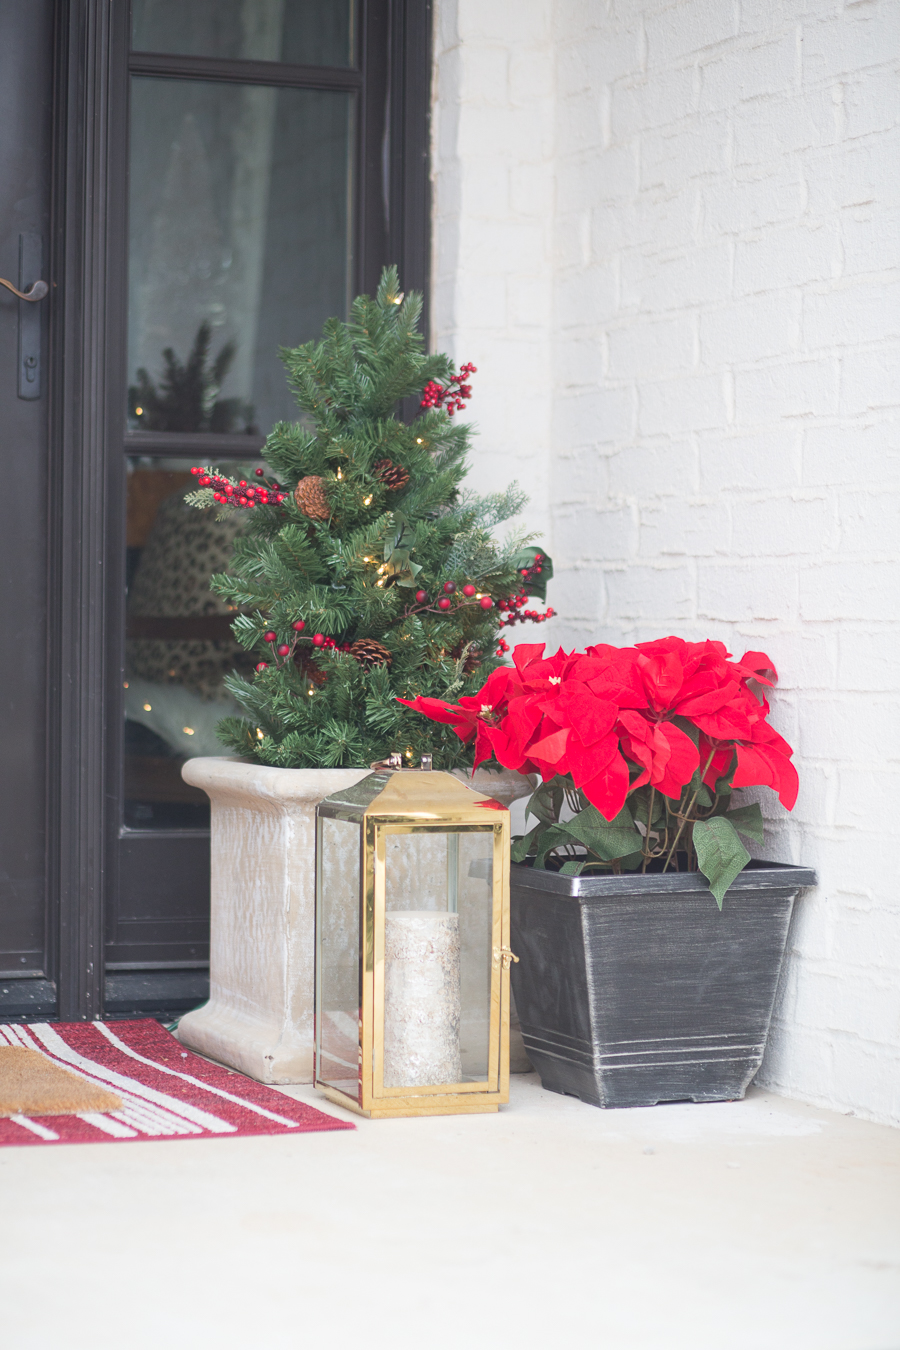 Holiday Decor Favorites from Home Depot